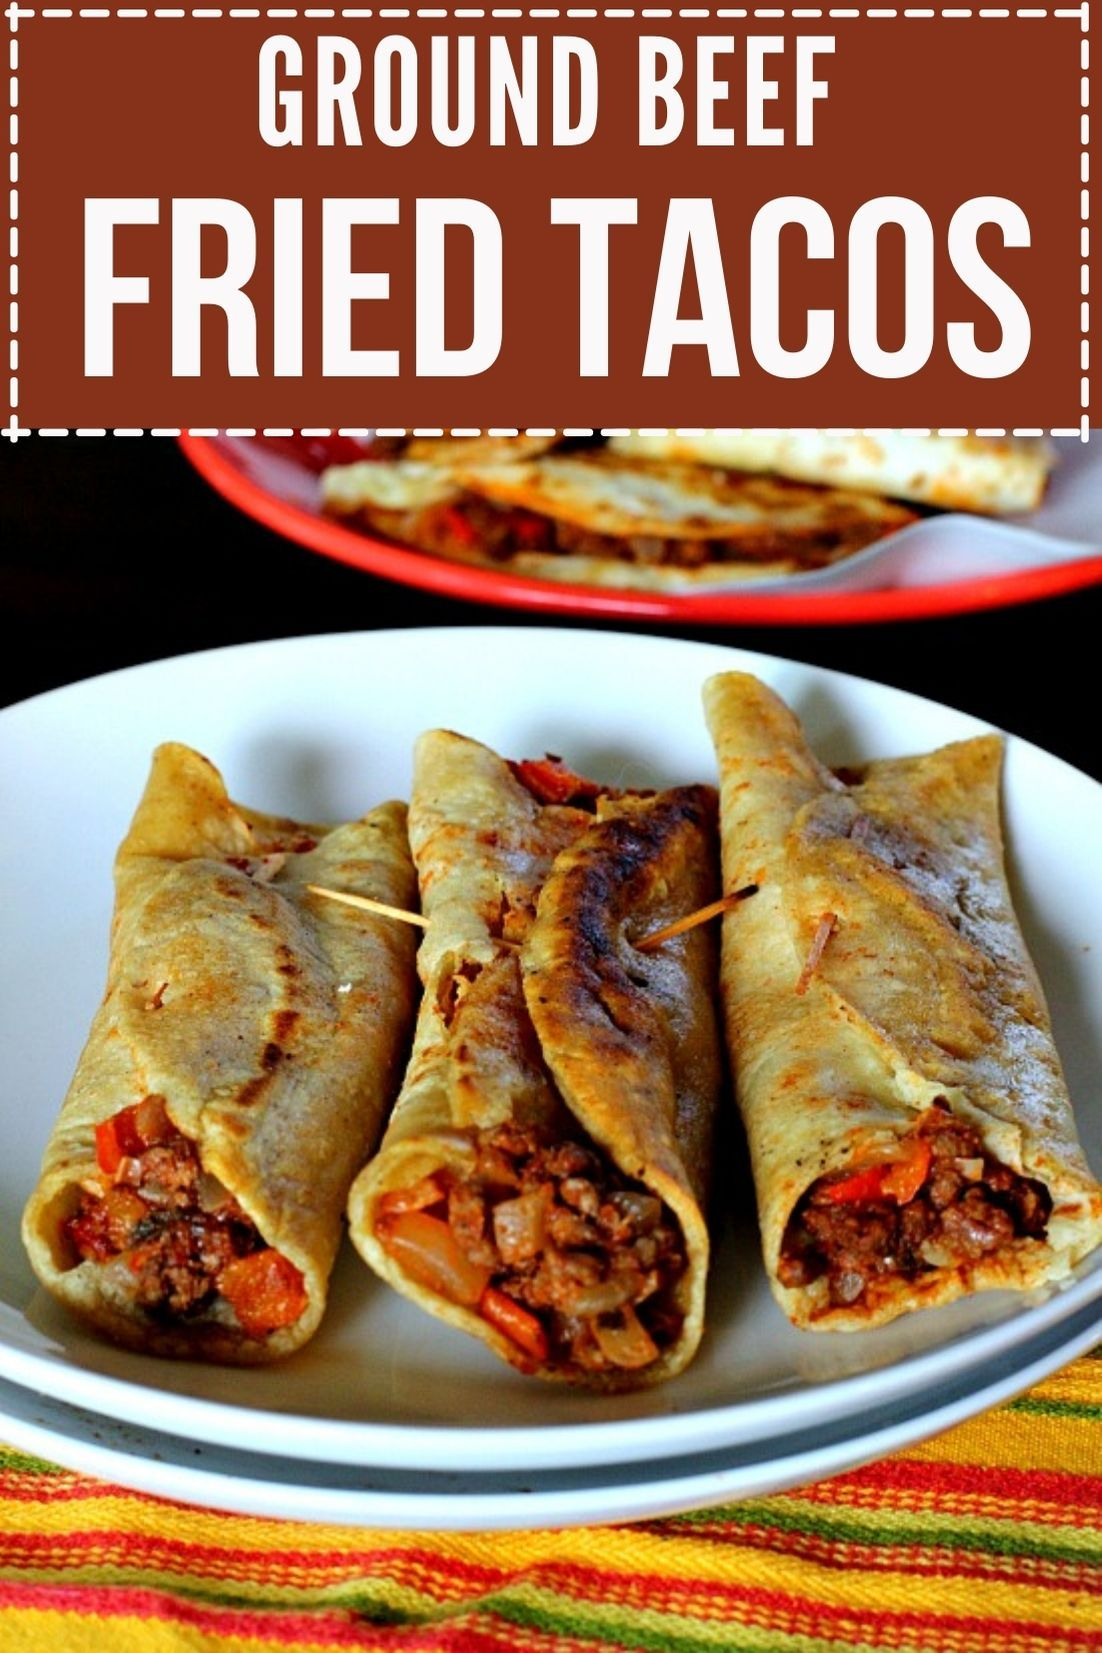 Crisp Up Your Next Taco Night With Fried Tacos Recipe In 2021 Fried Tacos Mexican Food Recipes Food